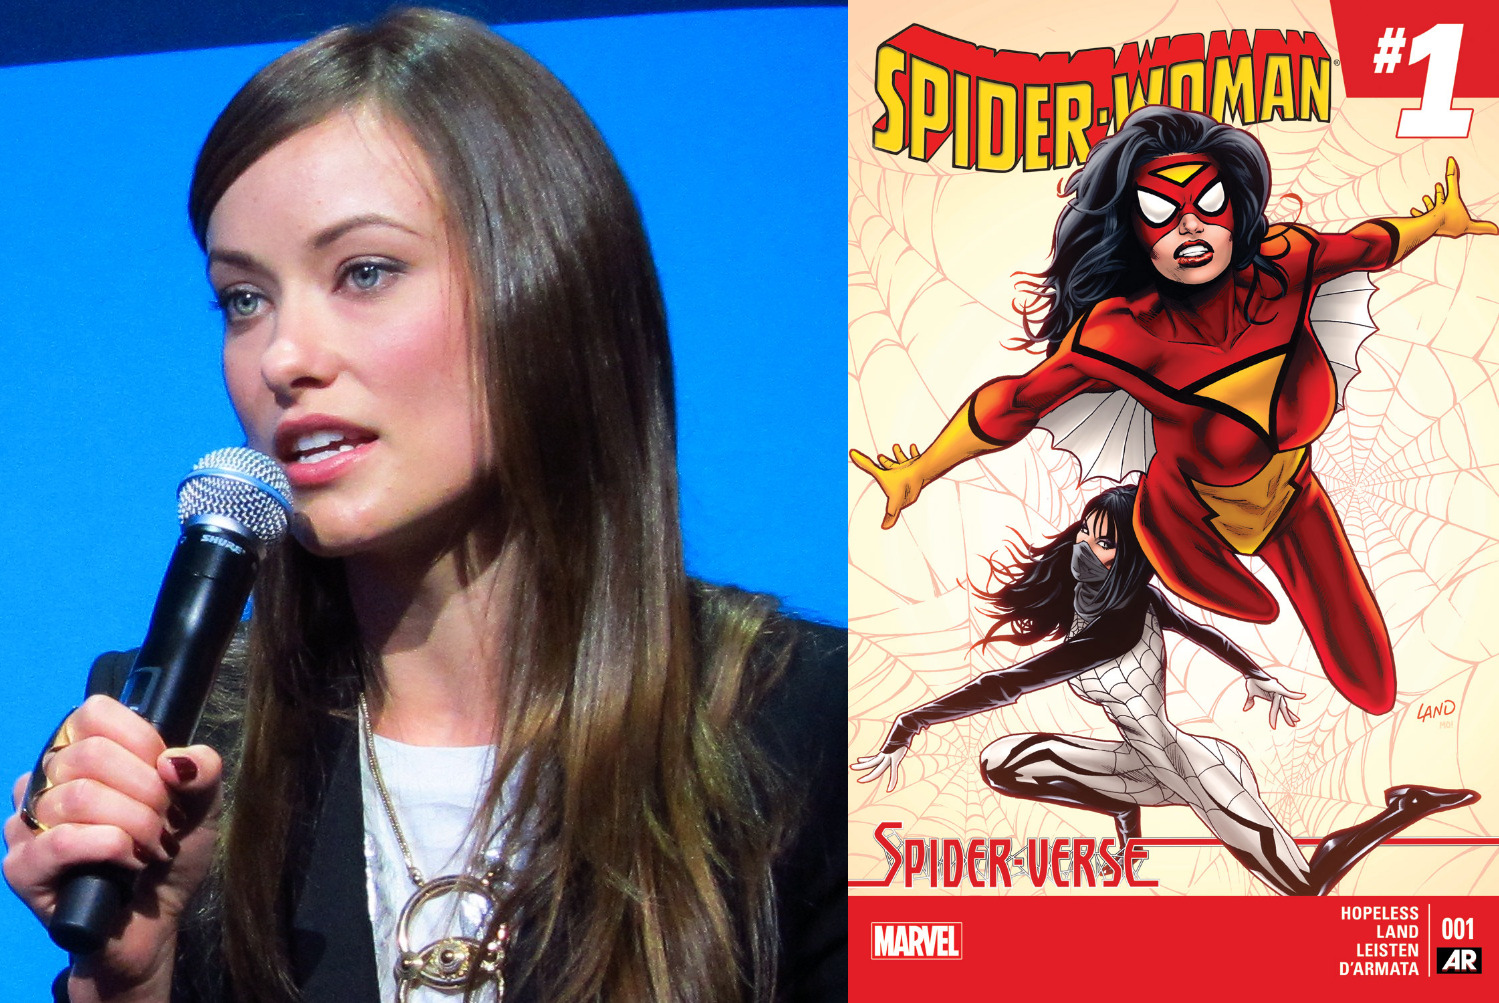 Olivia Wilde Will Direct a Secret Marvel Movie (That's Probably Spider-Woman)